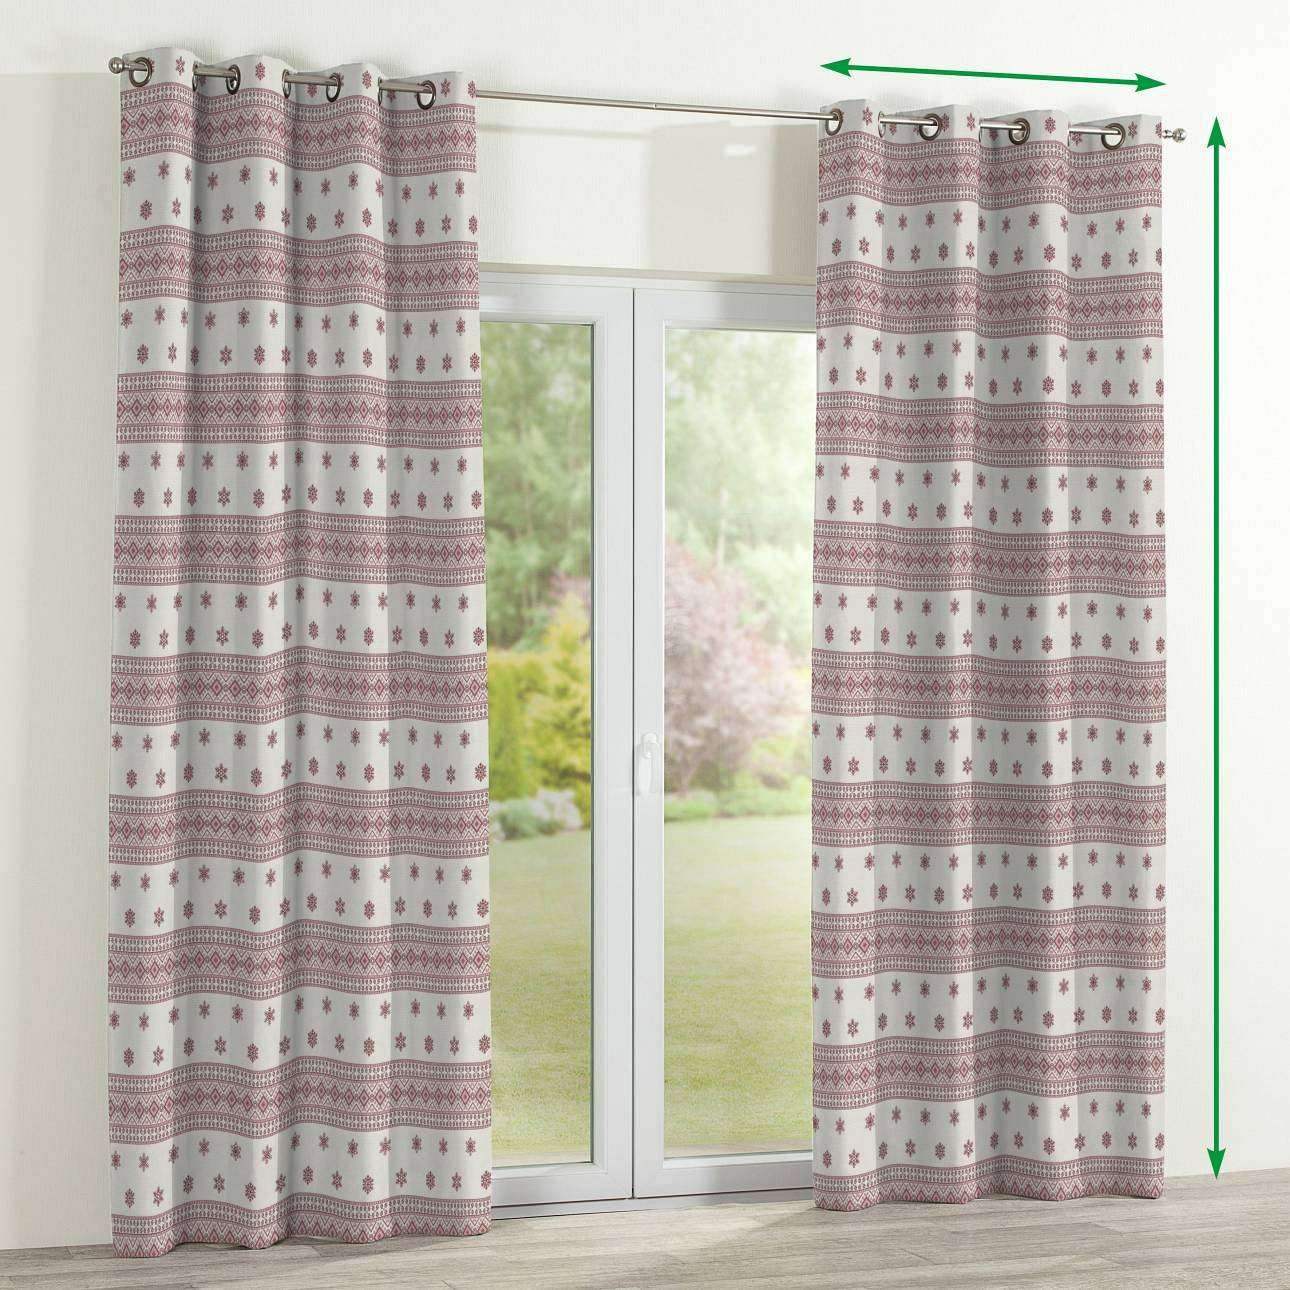 Eyelet curtains in collection Christmas , fabric: 630-23